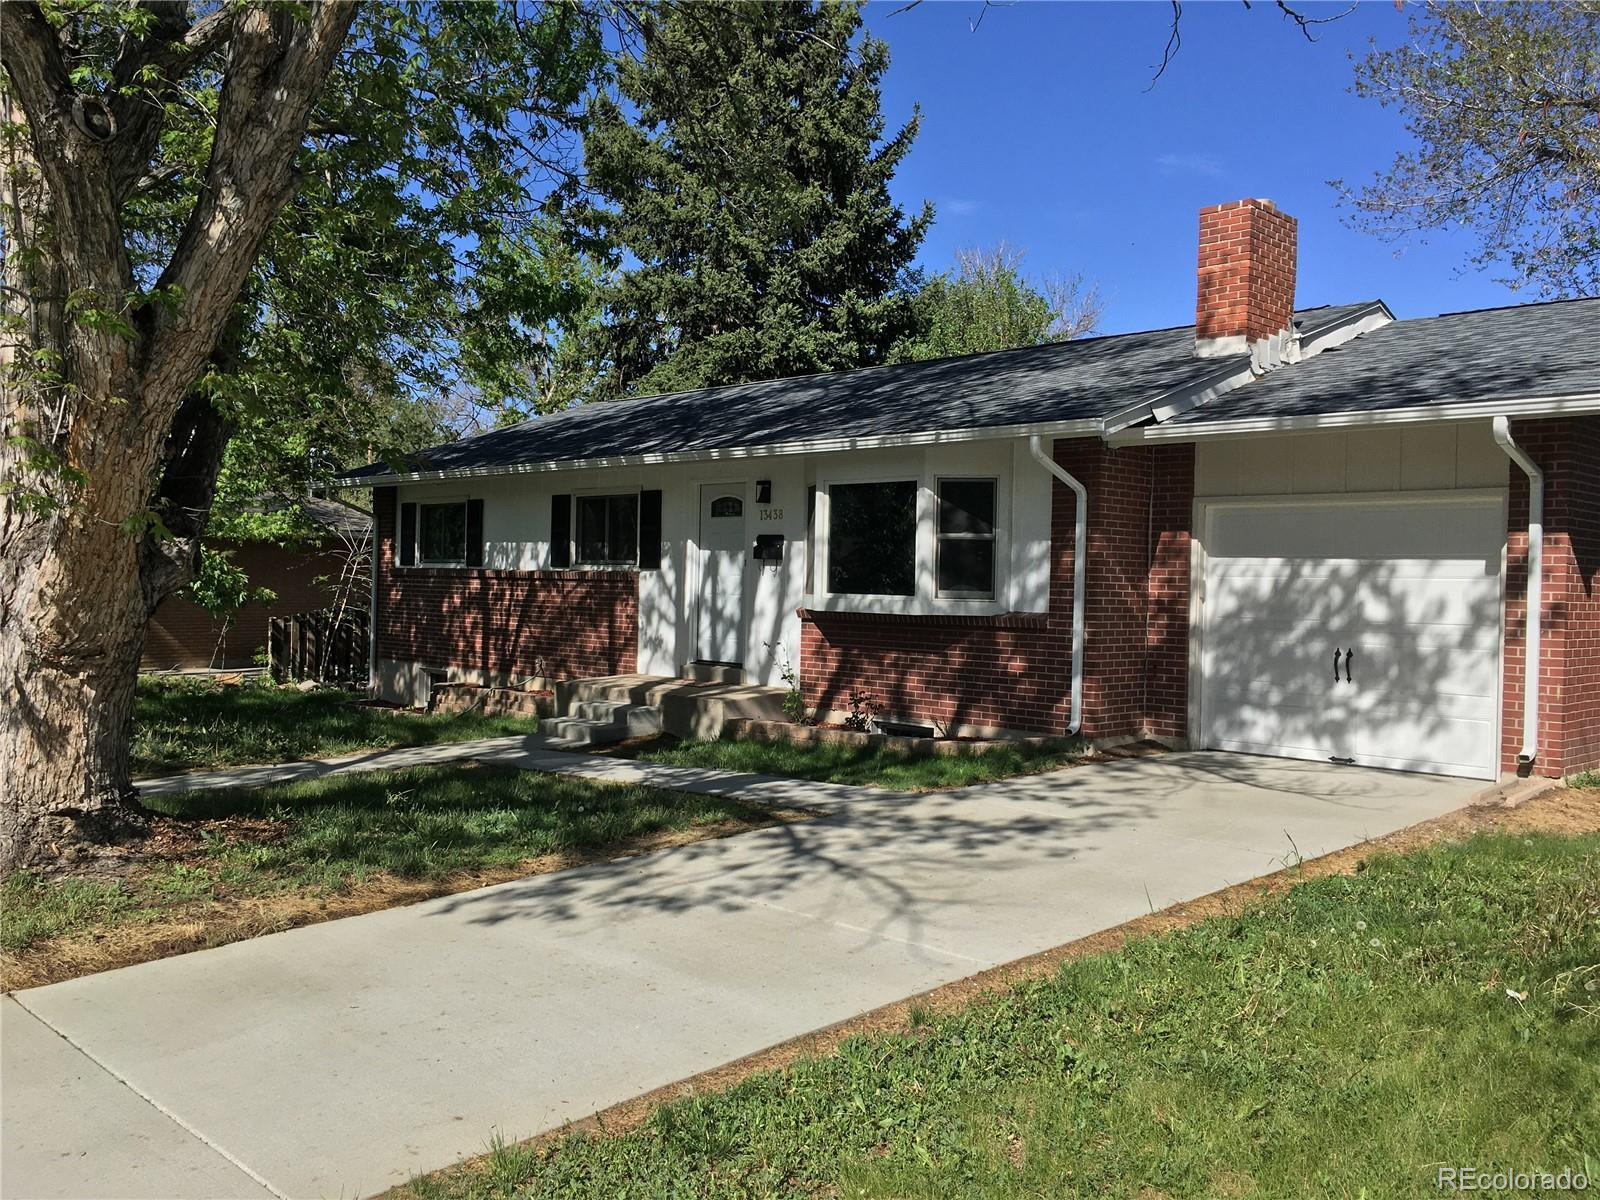 13438 W 23rd Place, Golden, CO 80401 - #: 2894898